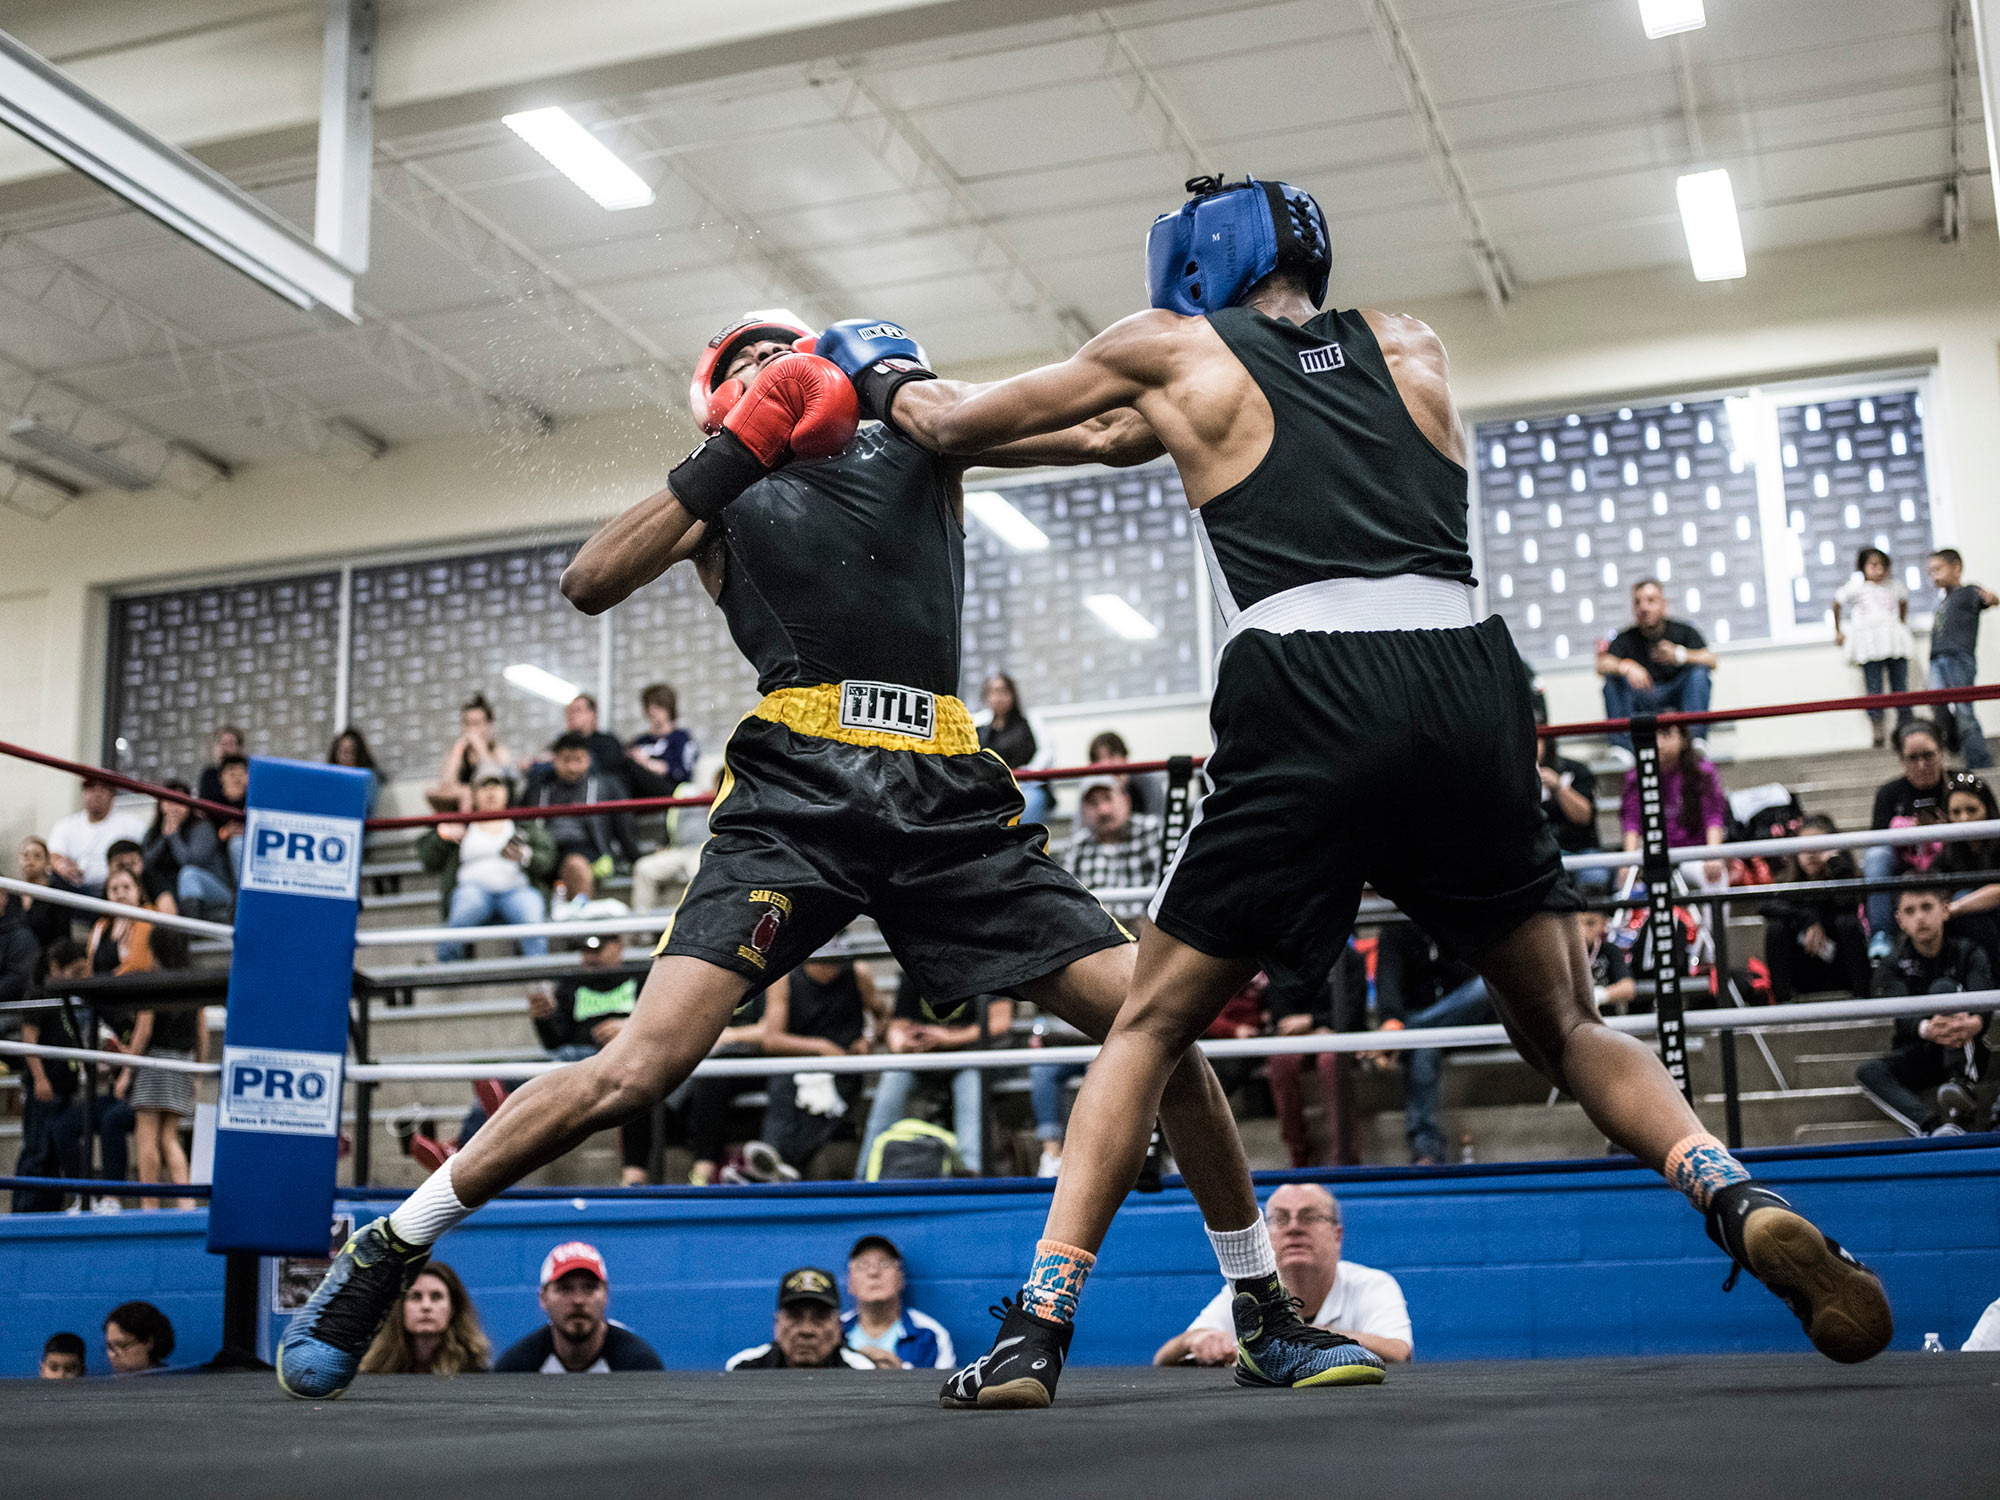 Youth amateur boxing